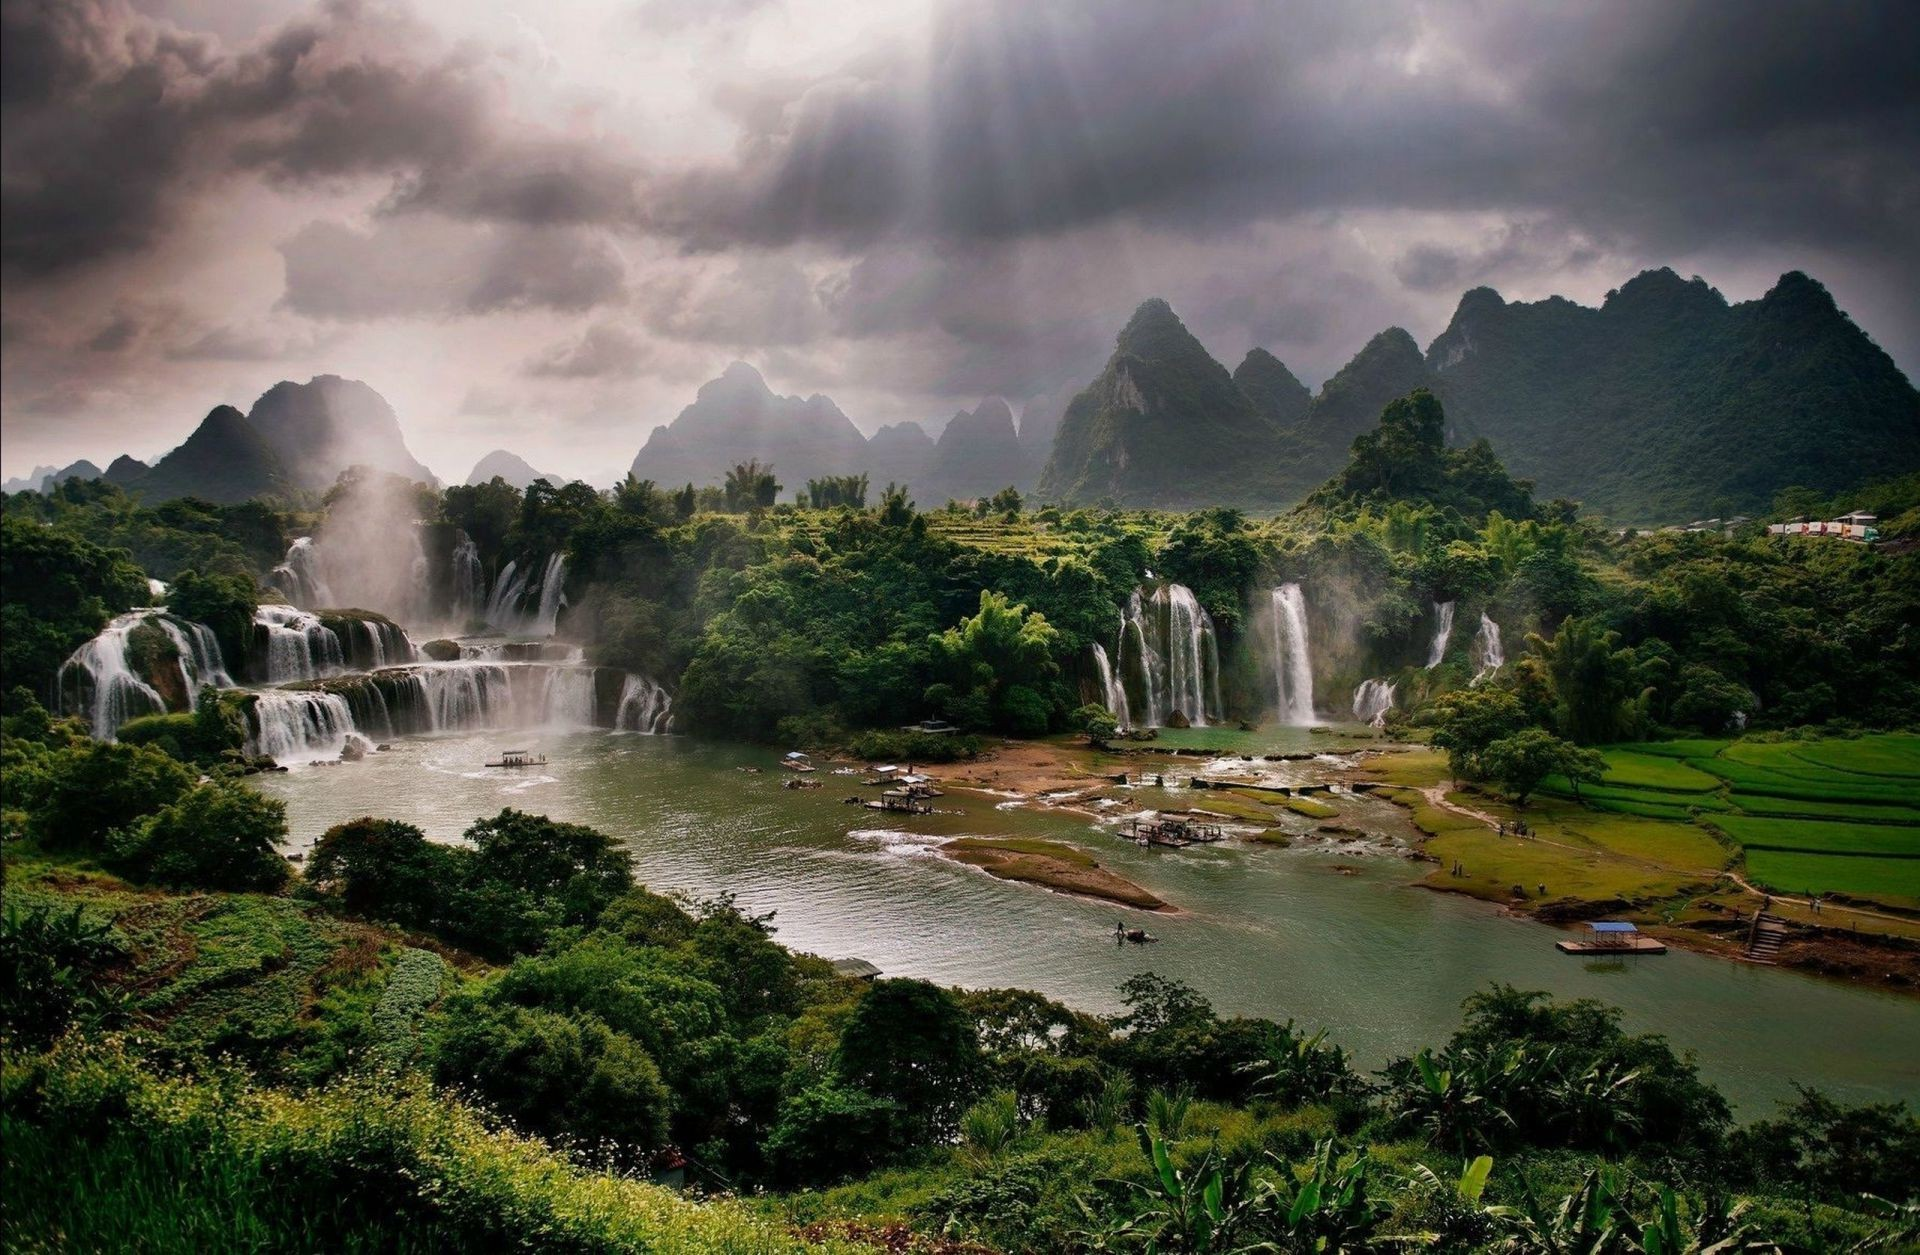 Nature waterfalls mountains river forest landscape